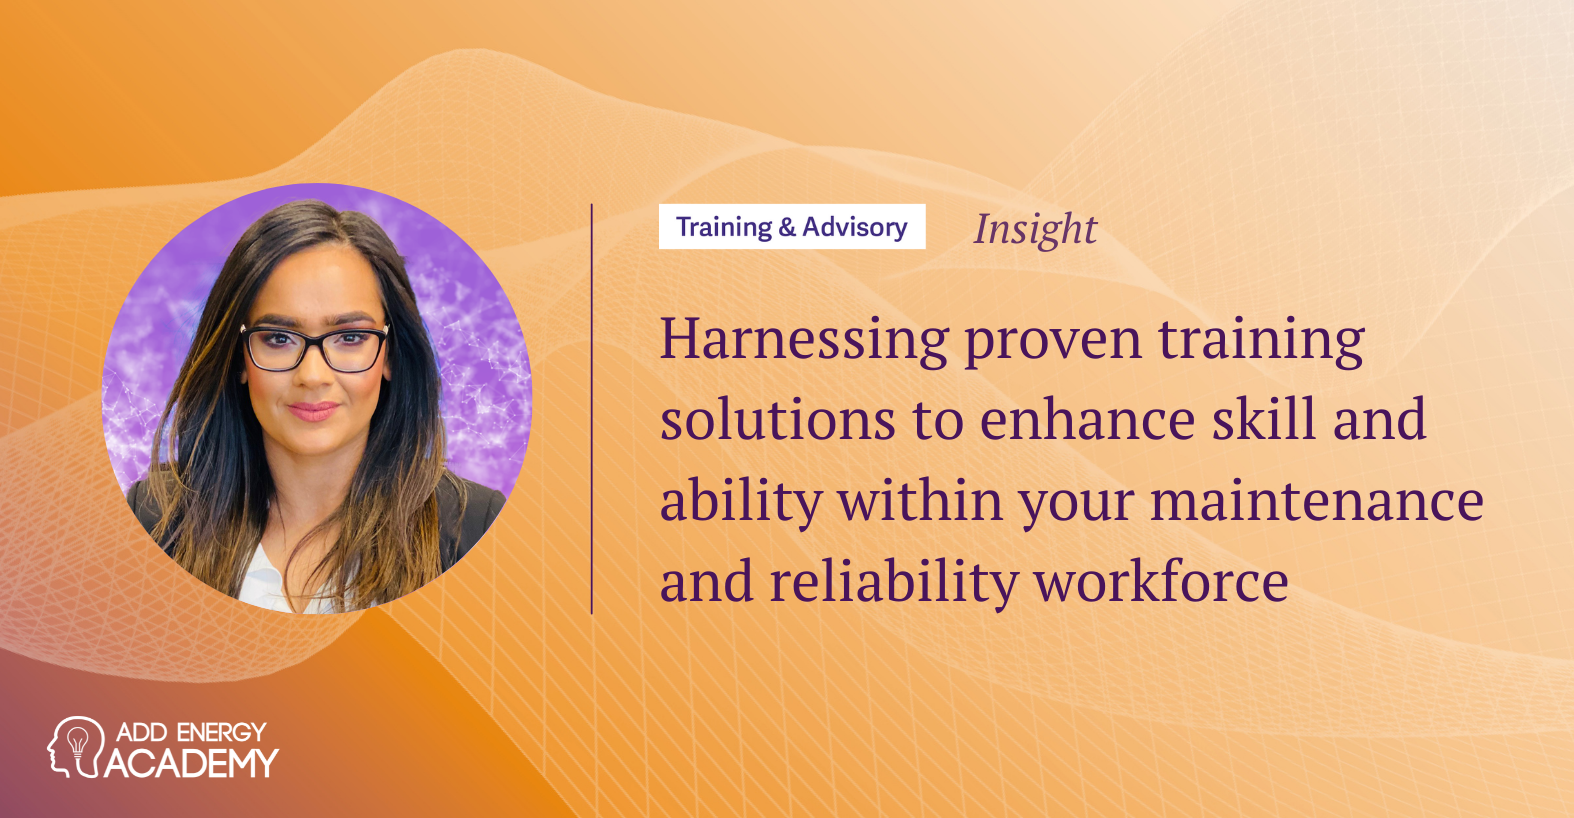 Harnessing proven training solutions to enhance skill and ability within your maintenance and reliability workforce